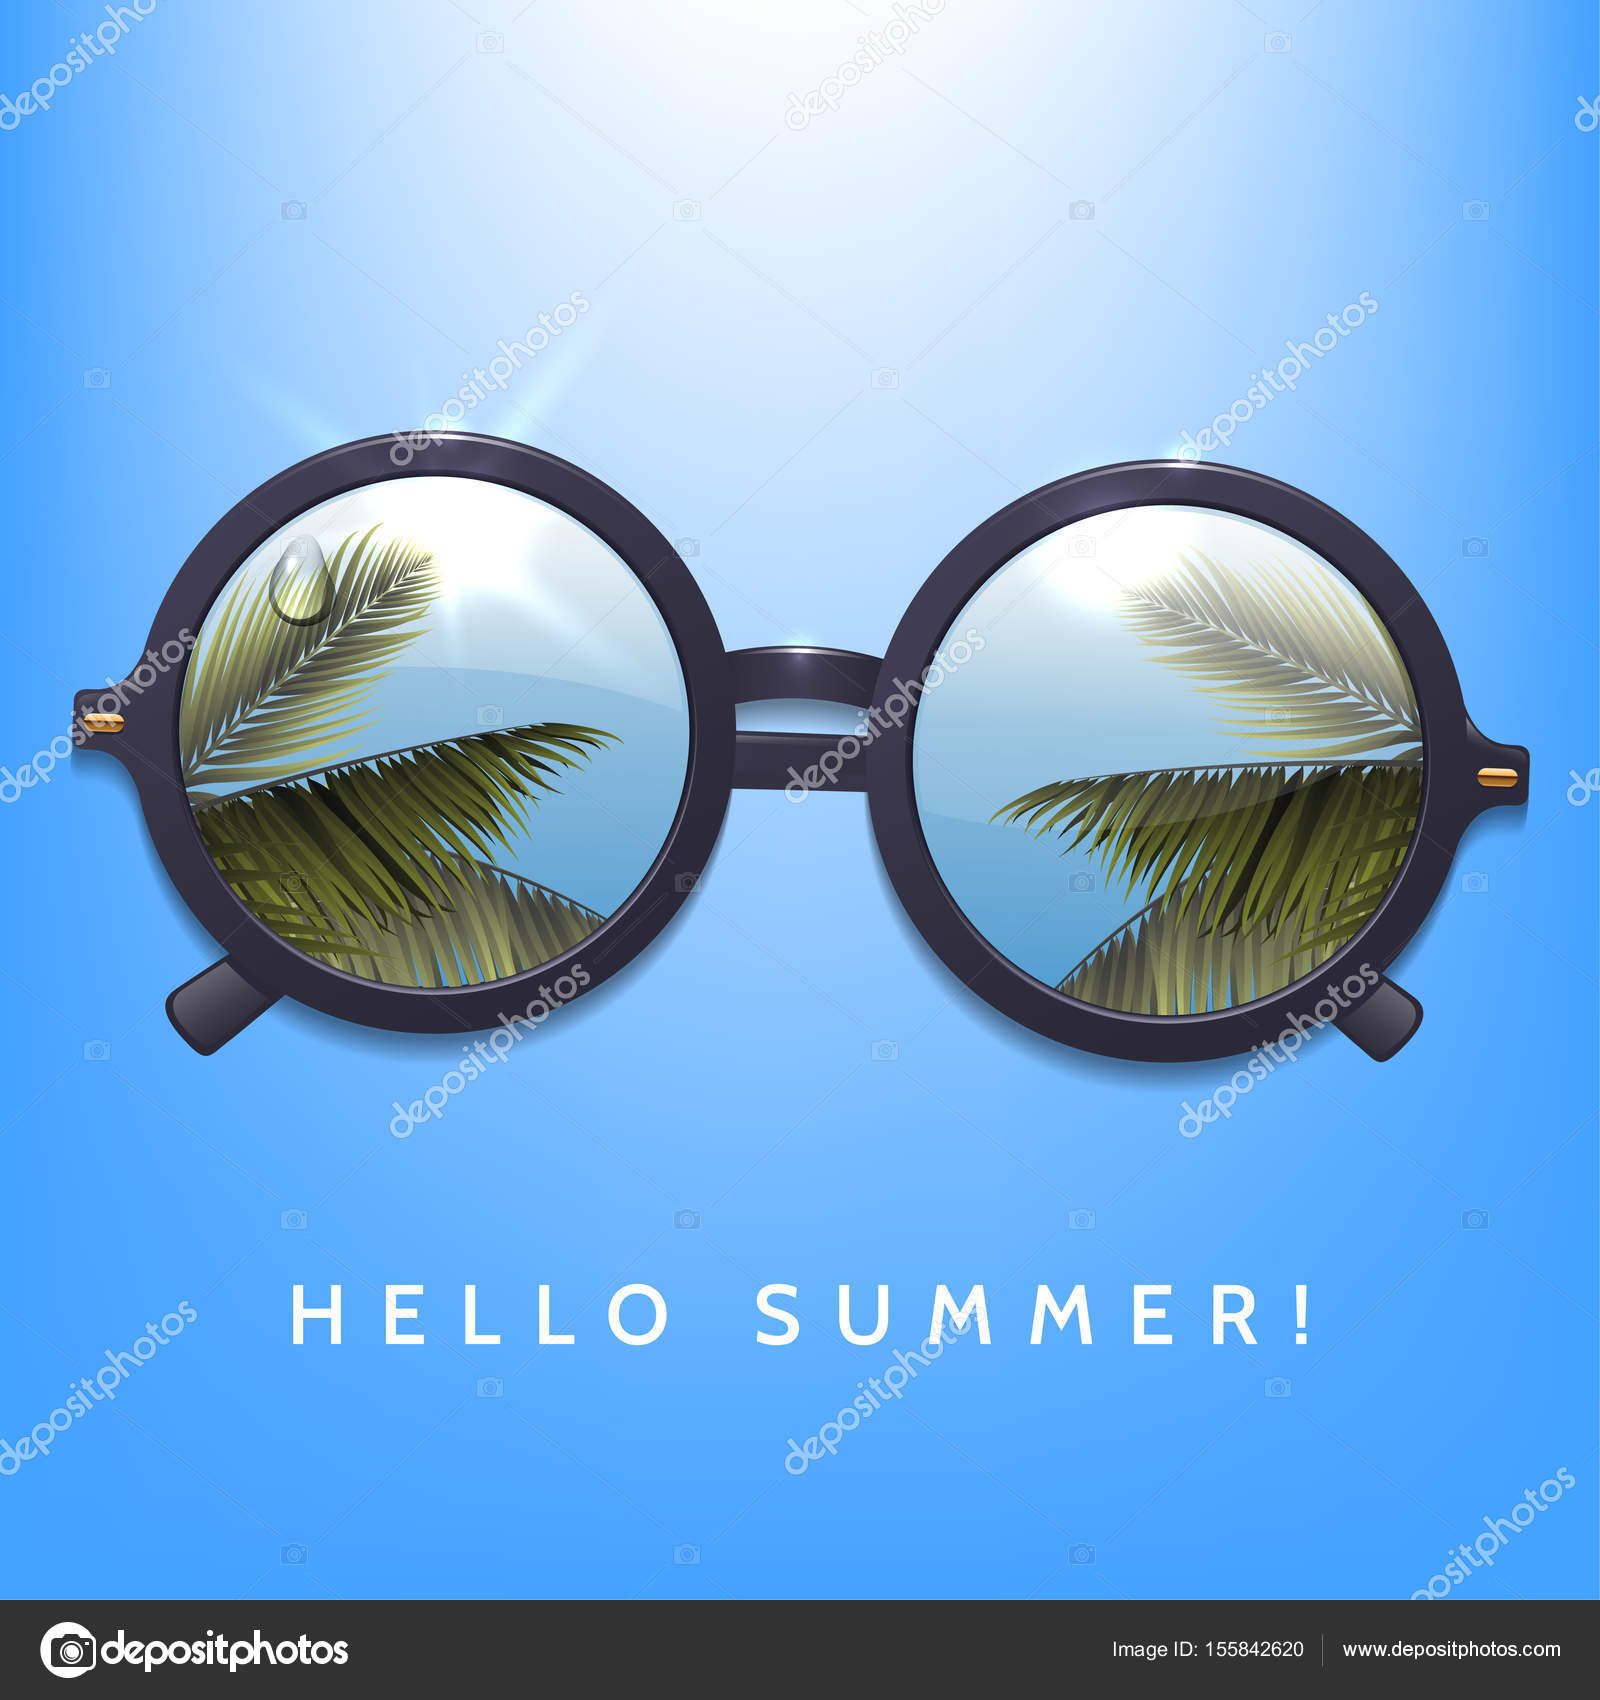 Merveilleux Hello Summer Illustration. Palms Reflection In Round Sunglasses. Blue Sky  Background. Flecks Of